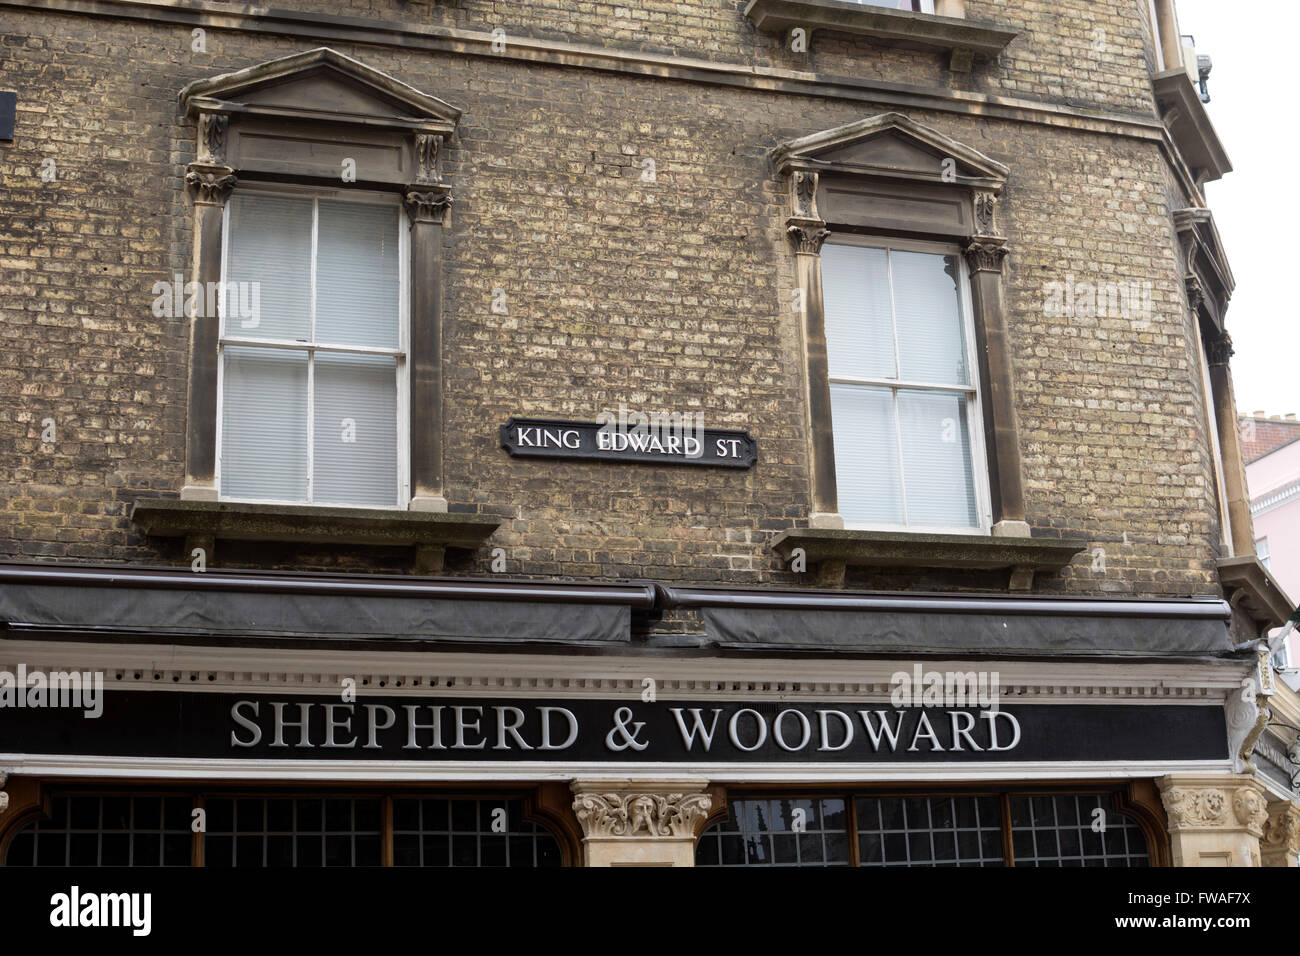 Shepherd and Woodward gowns shop, King Edward Street, Oxford city centre, UK - Stock Image